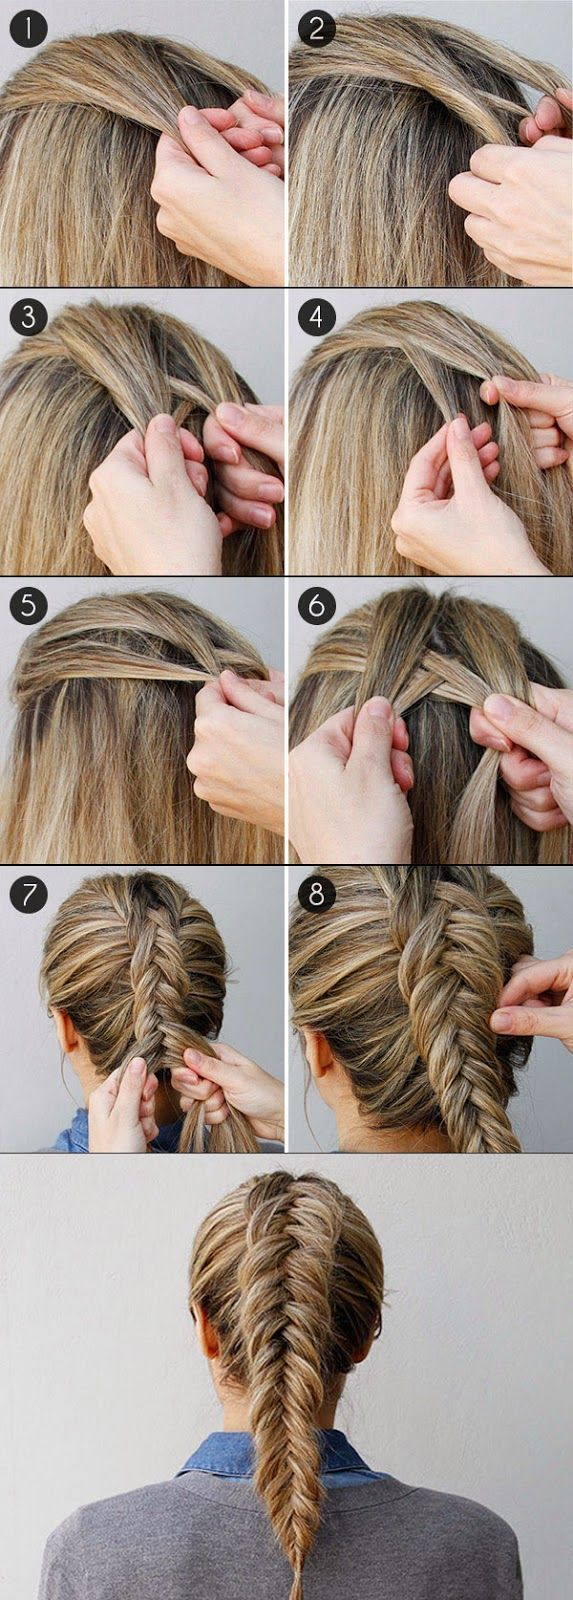 How To Fishtail Braid Your Own Hair Hairstyle Ideas Calgary Edmonton Toronto Red Deer Lethbridge With Images Long Hair Styles Braiding Your Own Hair Hair Styles